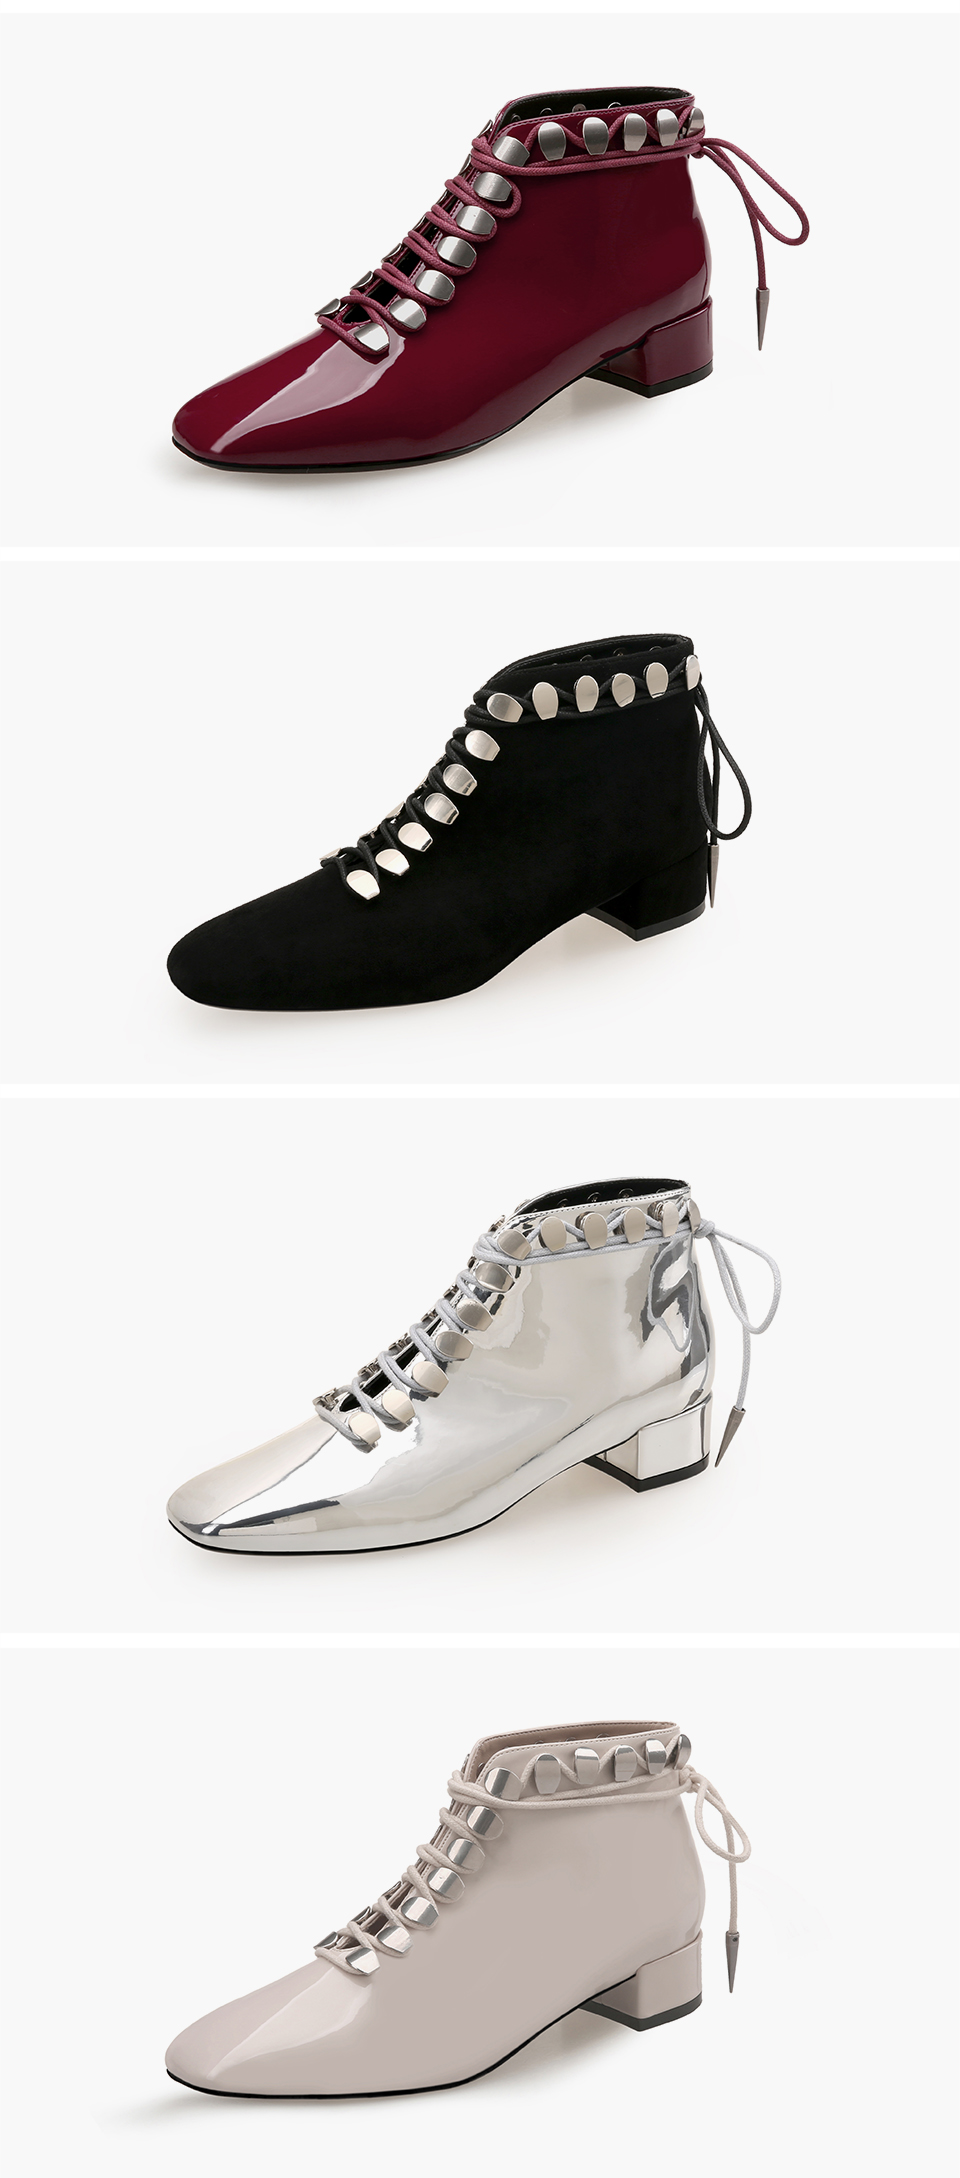 4 ankle boots